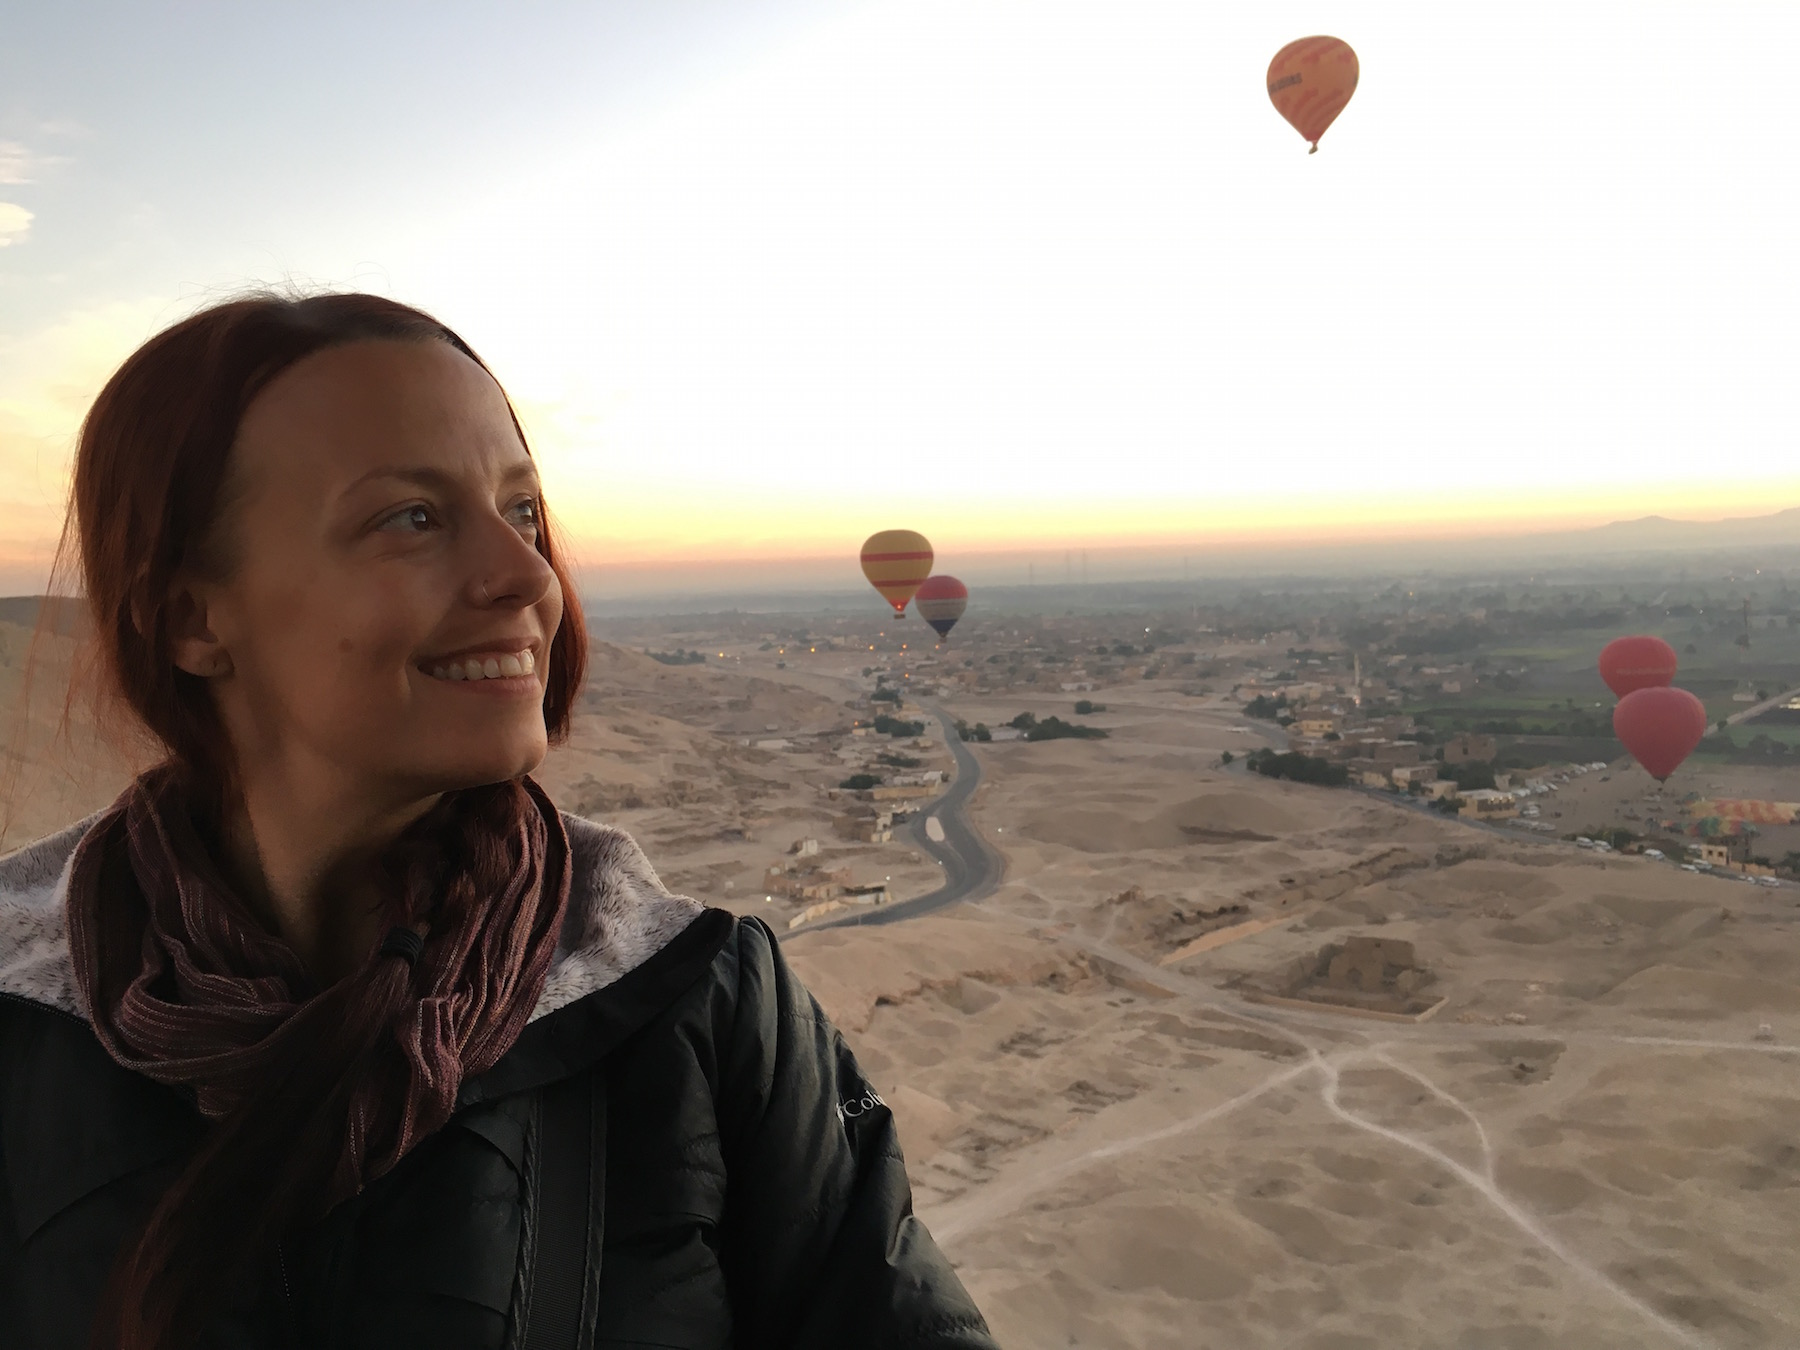 Hot Air Balloon Adventure Luxor Egypt - Things to do in Luxor